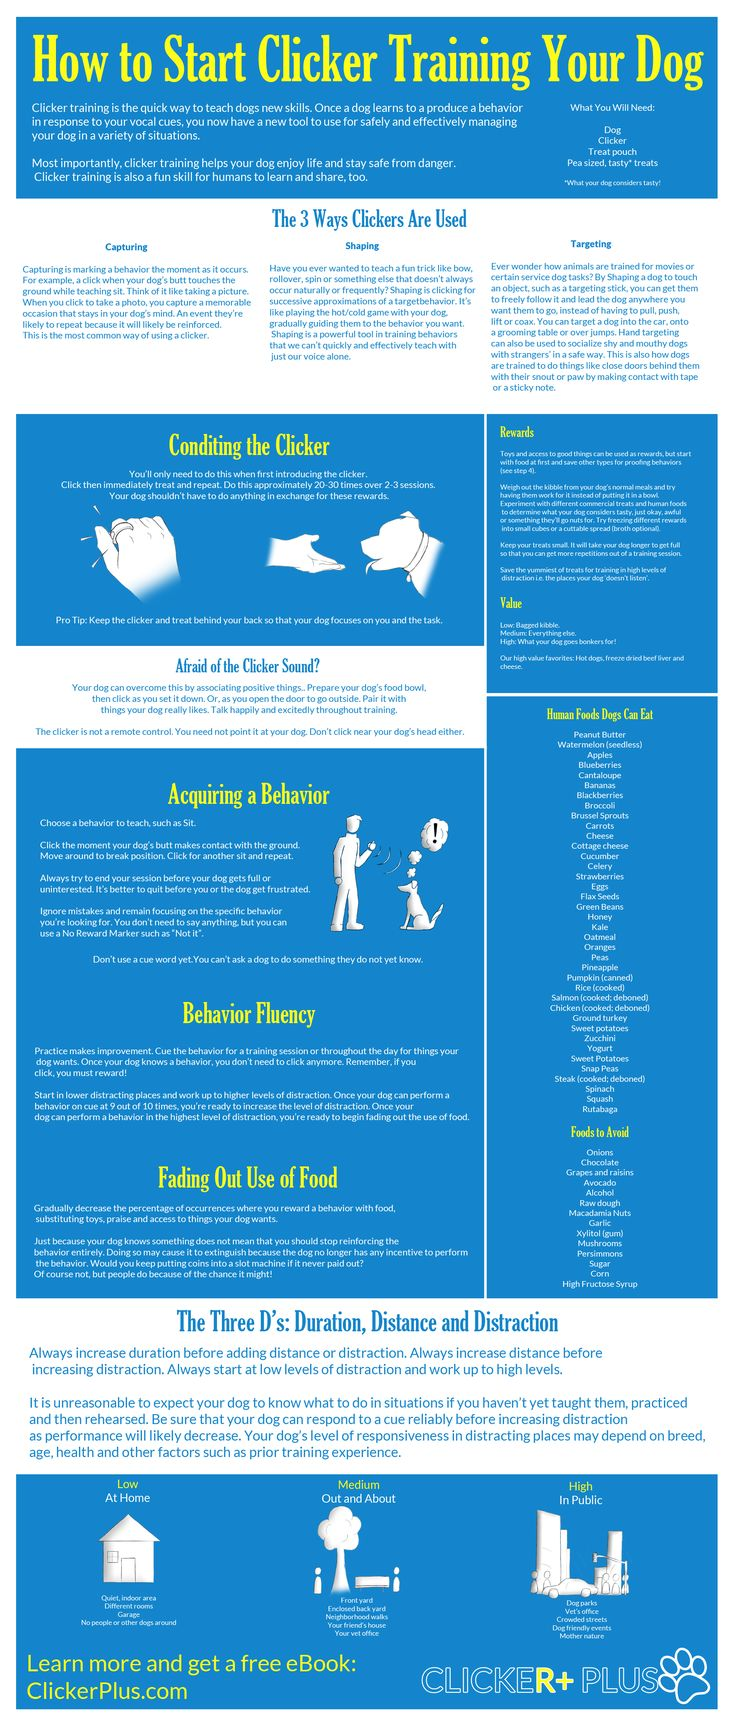 Infographic - How to Start Clicker Training Your Dog Read more in http://natureandhealth.net/